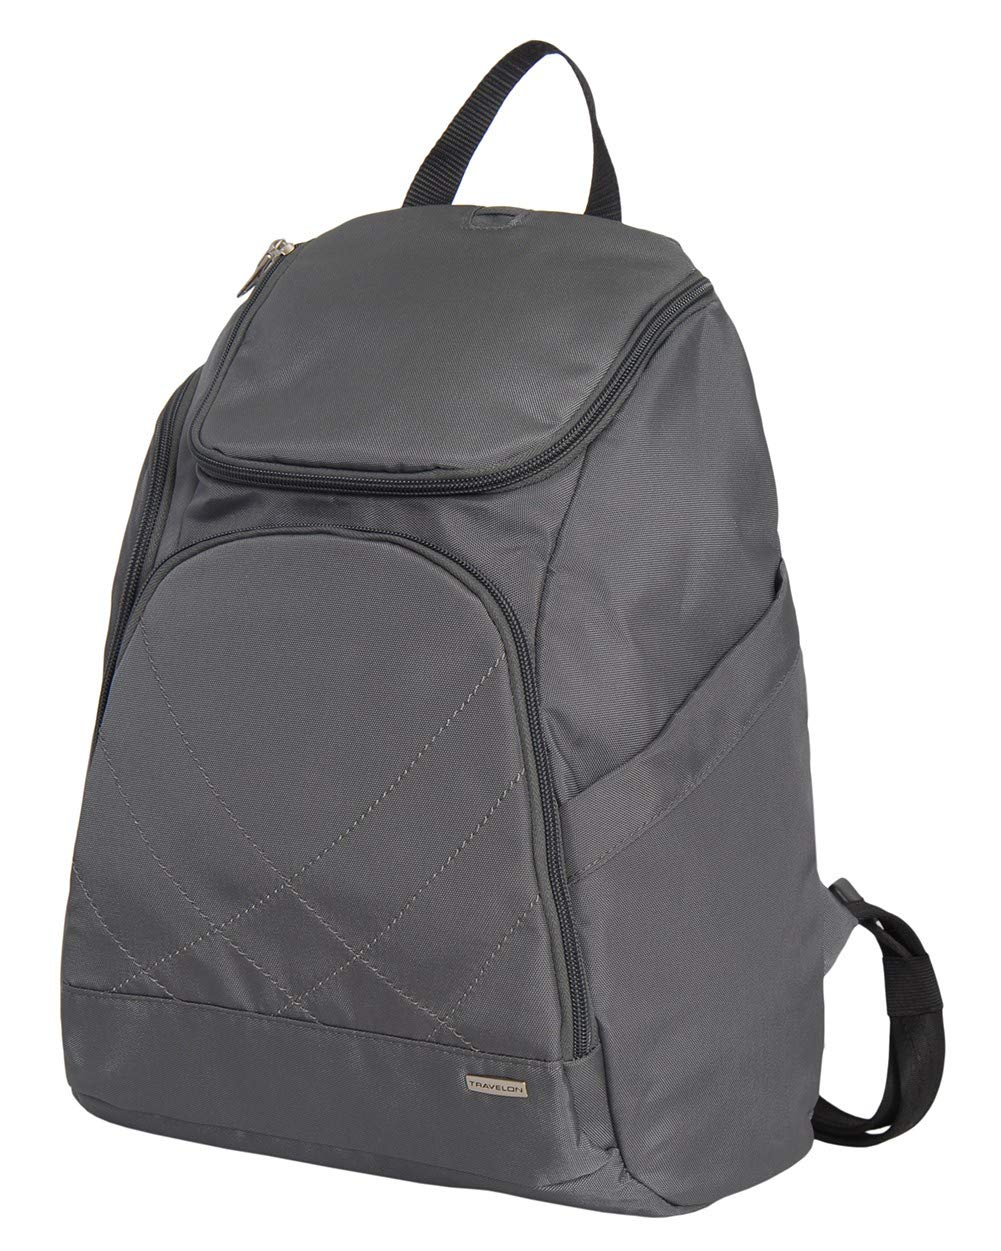 Travelon Anti Theft Classic Backpack (DARK GREY W/TEAL LINING) by Travelon